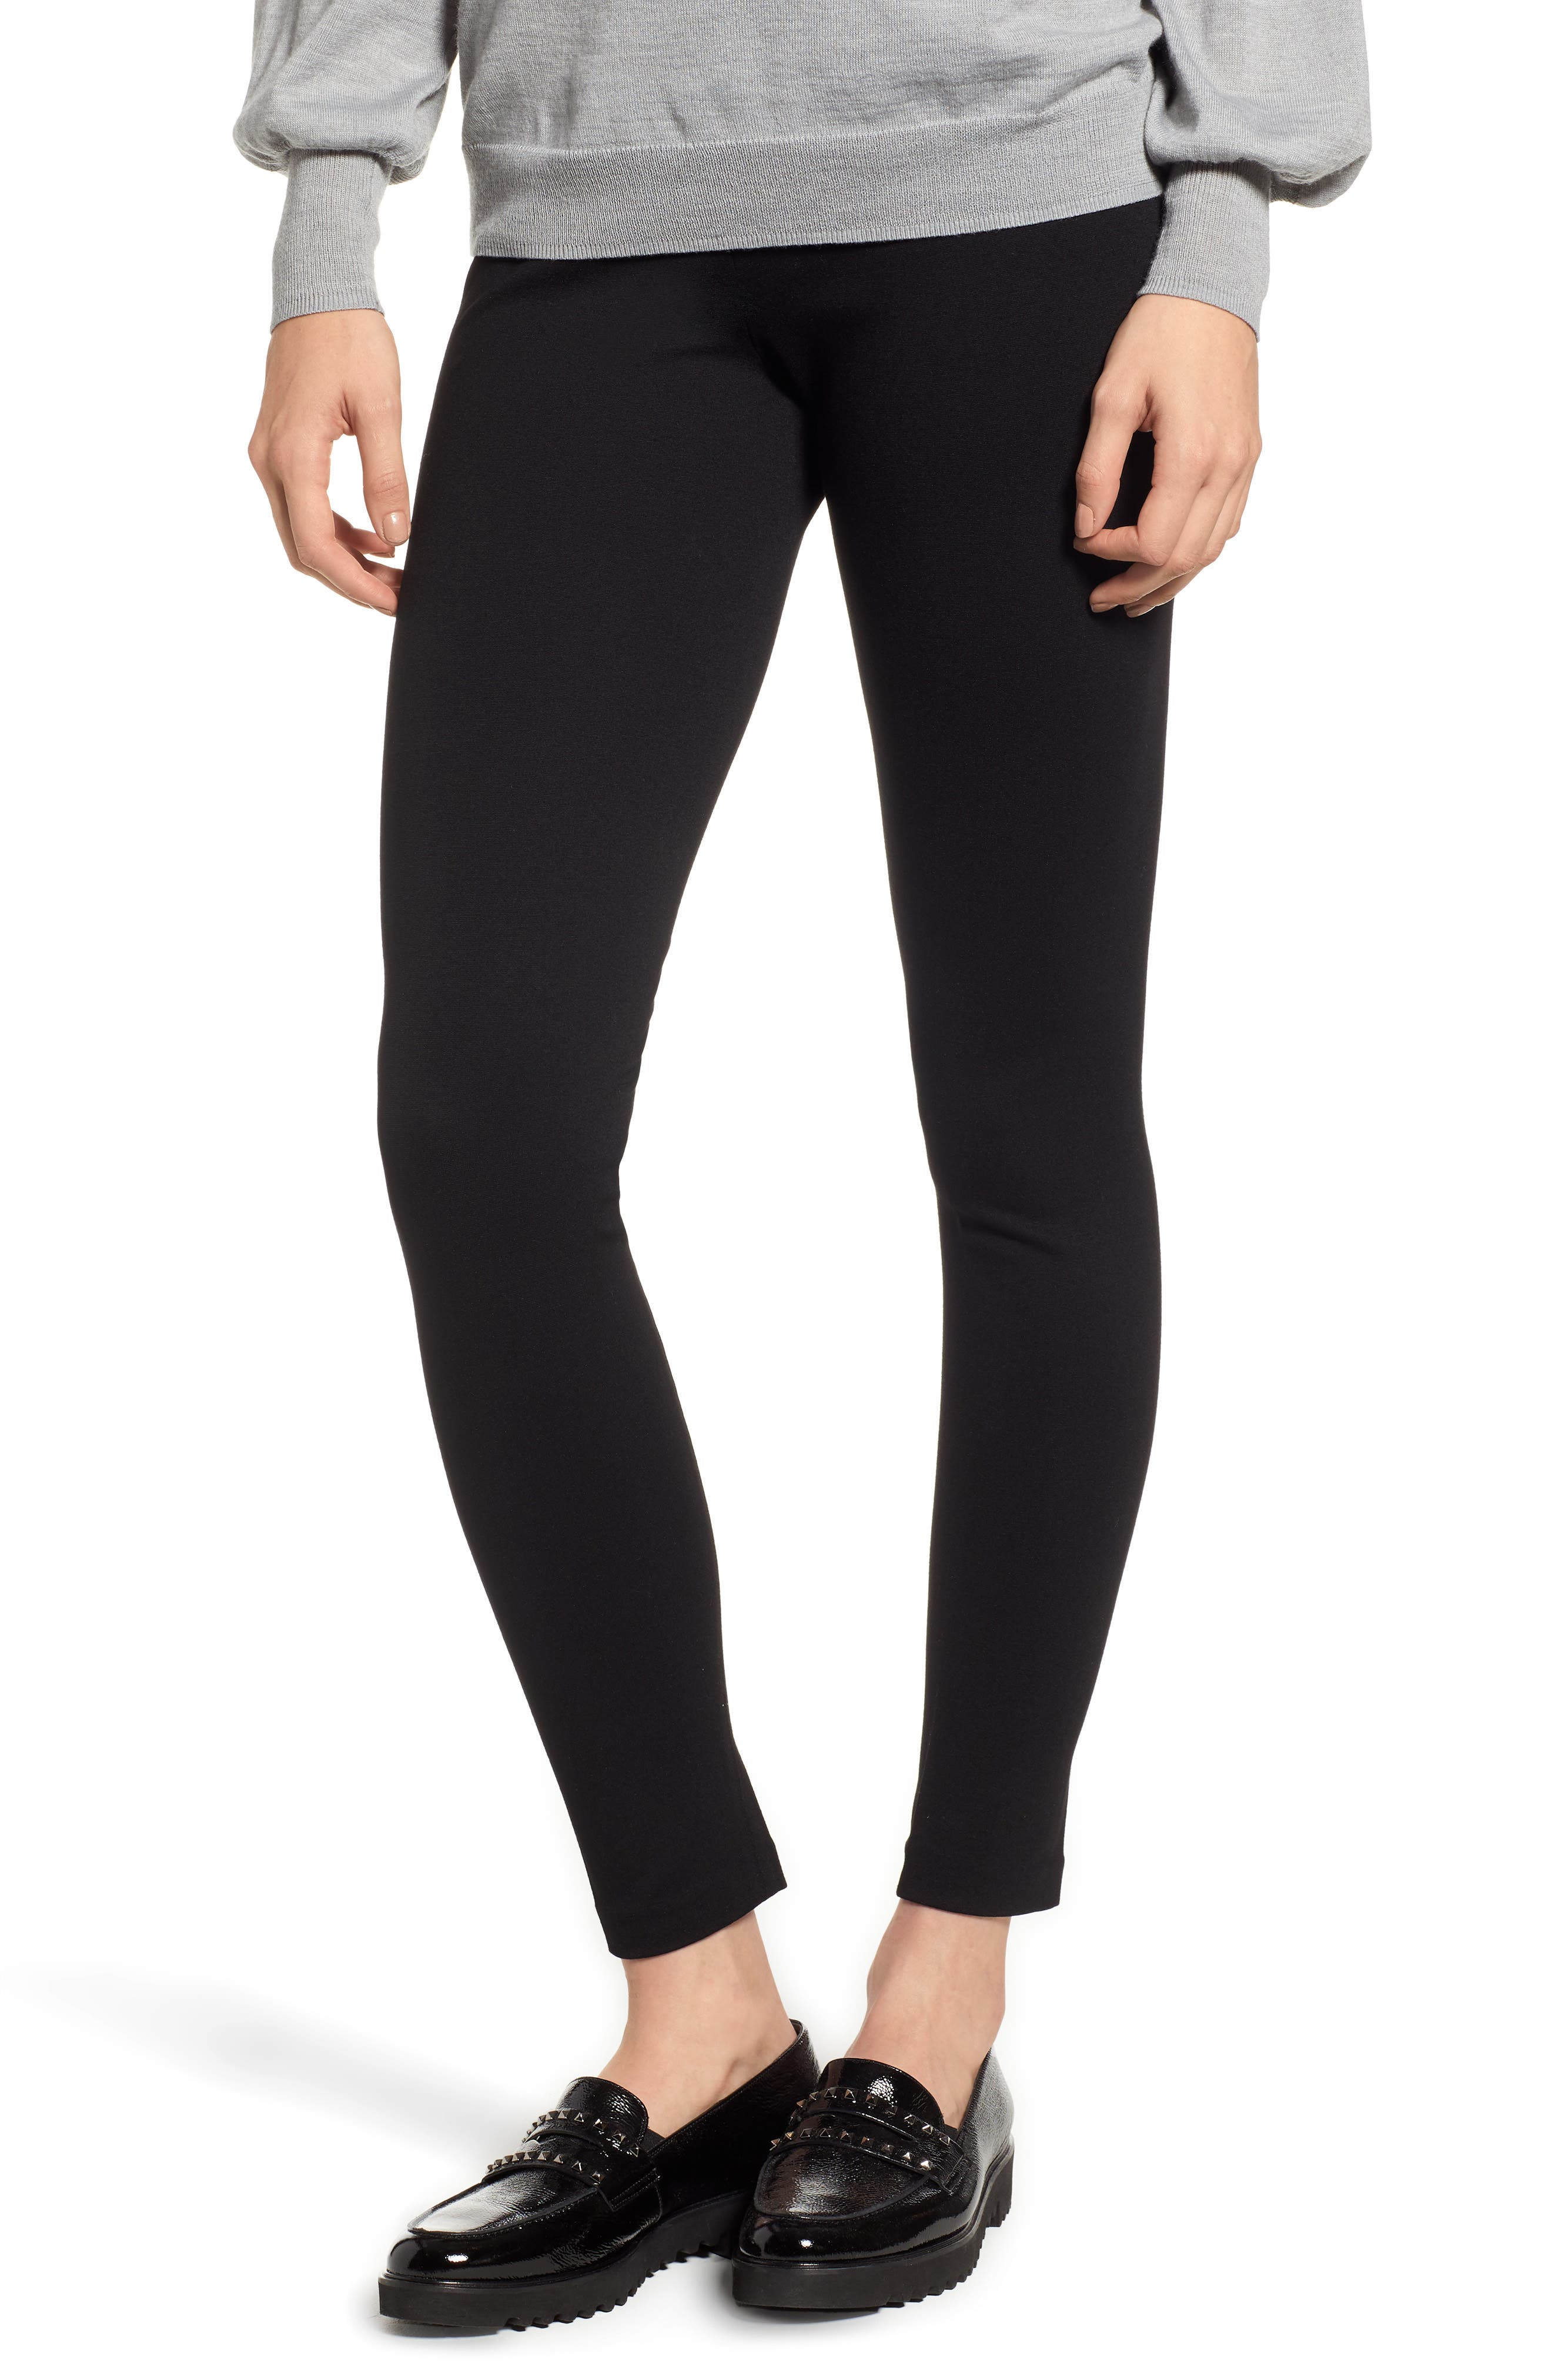 VINCE CAMUTO,                             Two by Vince Camuto Seamed Back Leggings,                             Main thumbnail 1, color,                             RICH BLACK